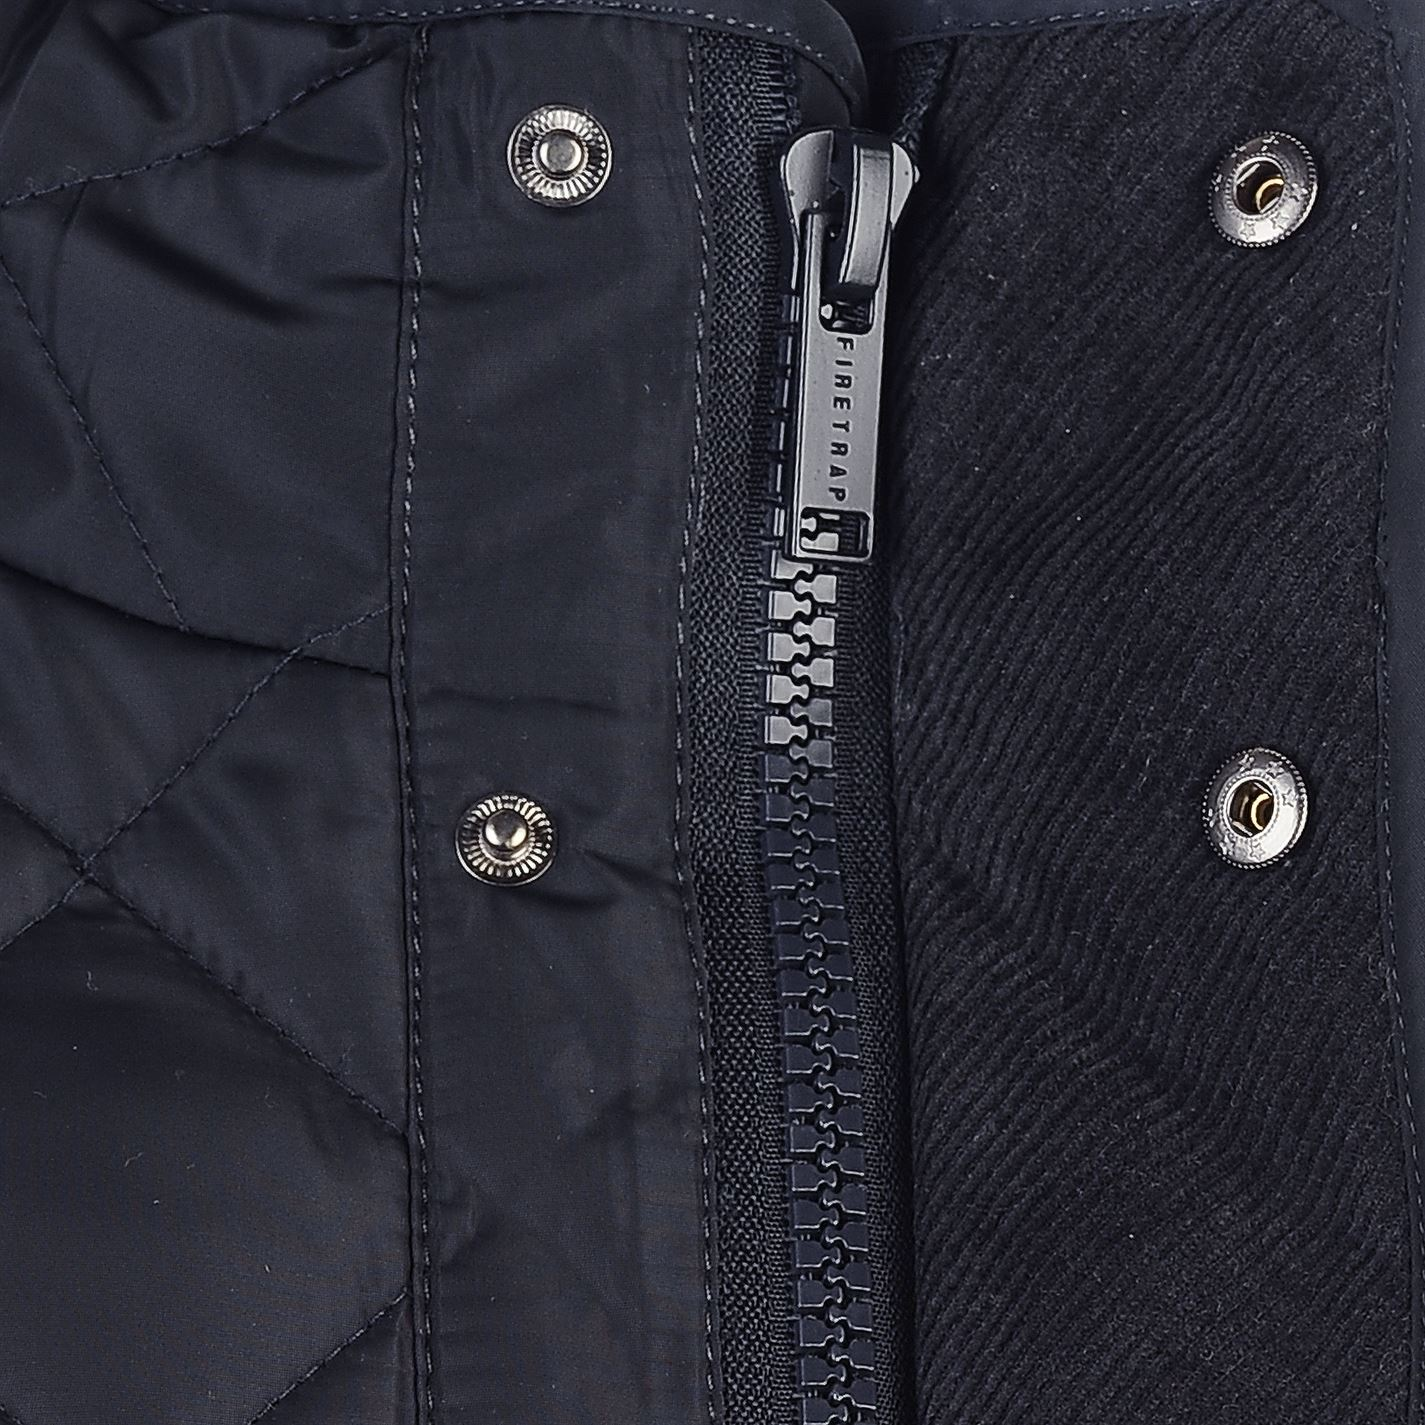 Mens-Firetrap-Kingdom-Jacket-Quilted-Long-Sleeve-New thumbnail 11